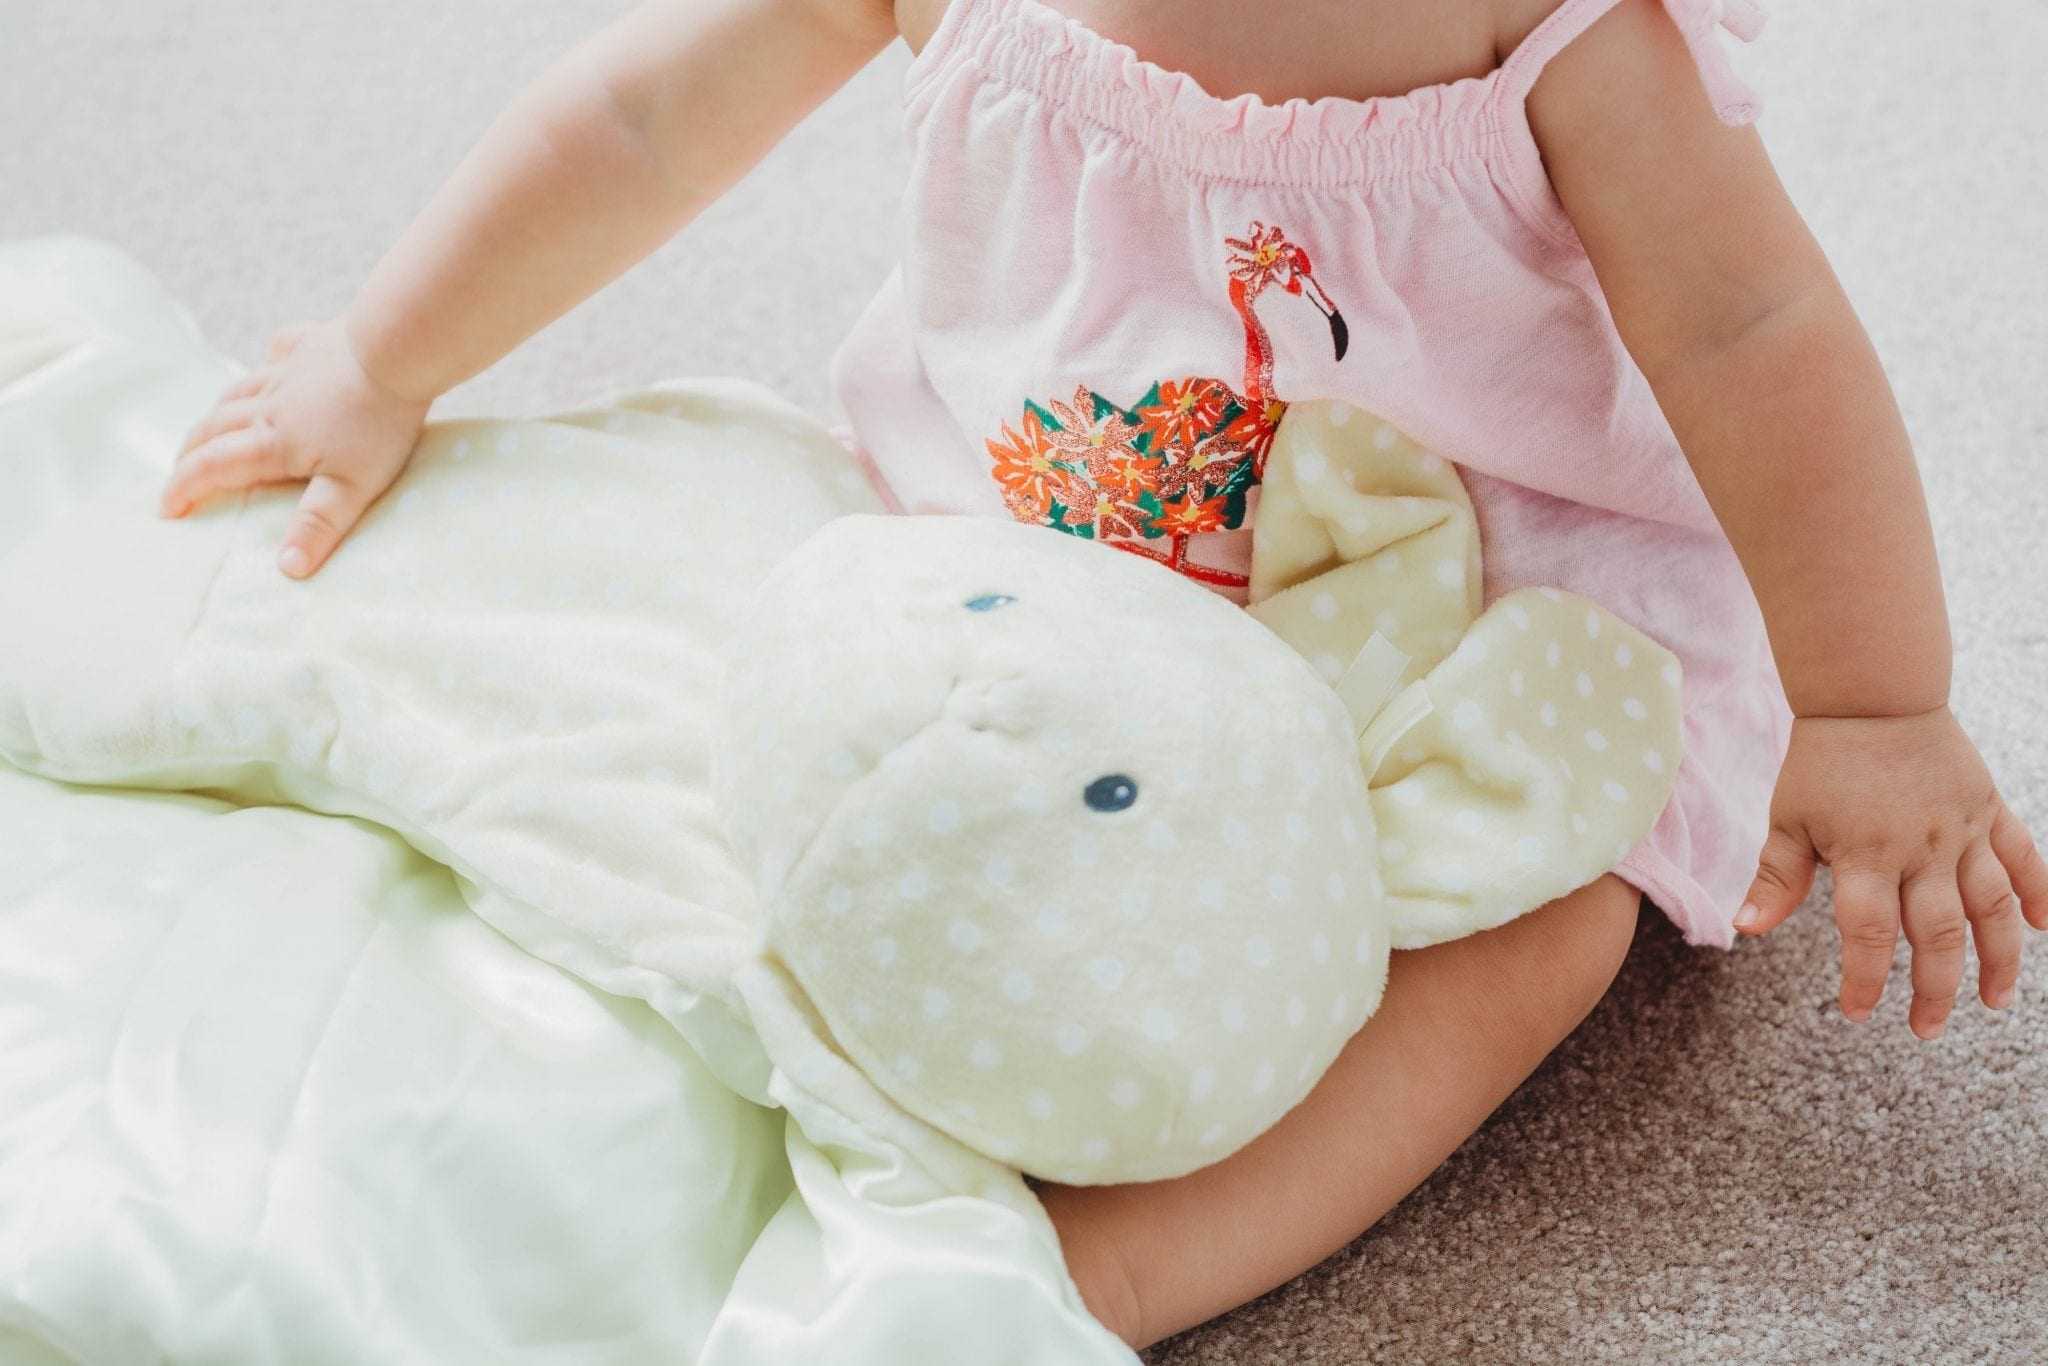 Nursery Decorating and Baby Shower Gift-Giving: GUND Has it All